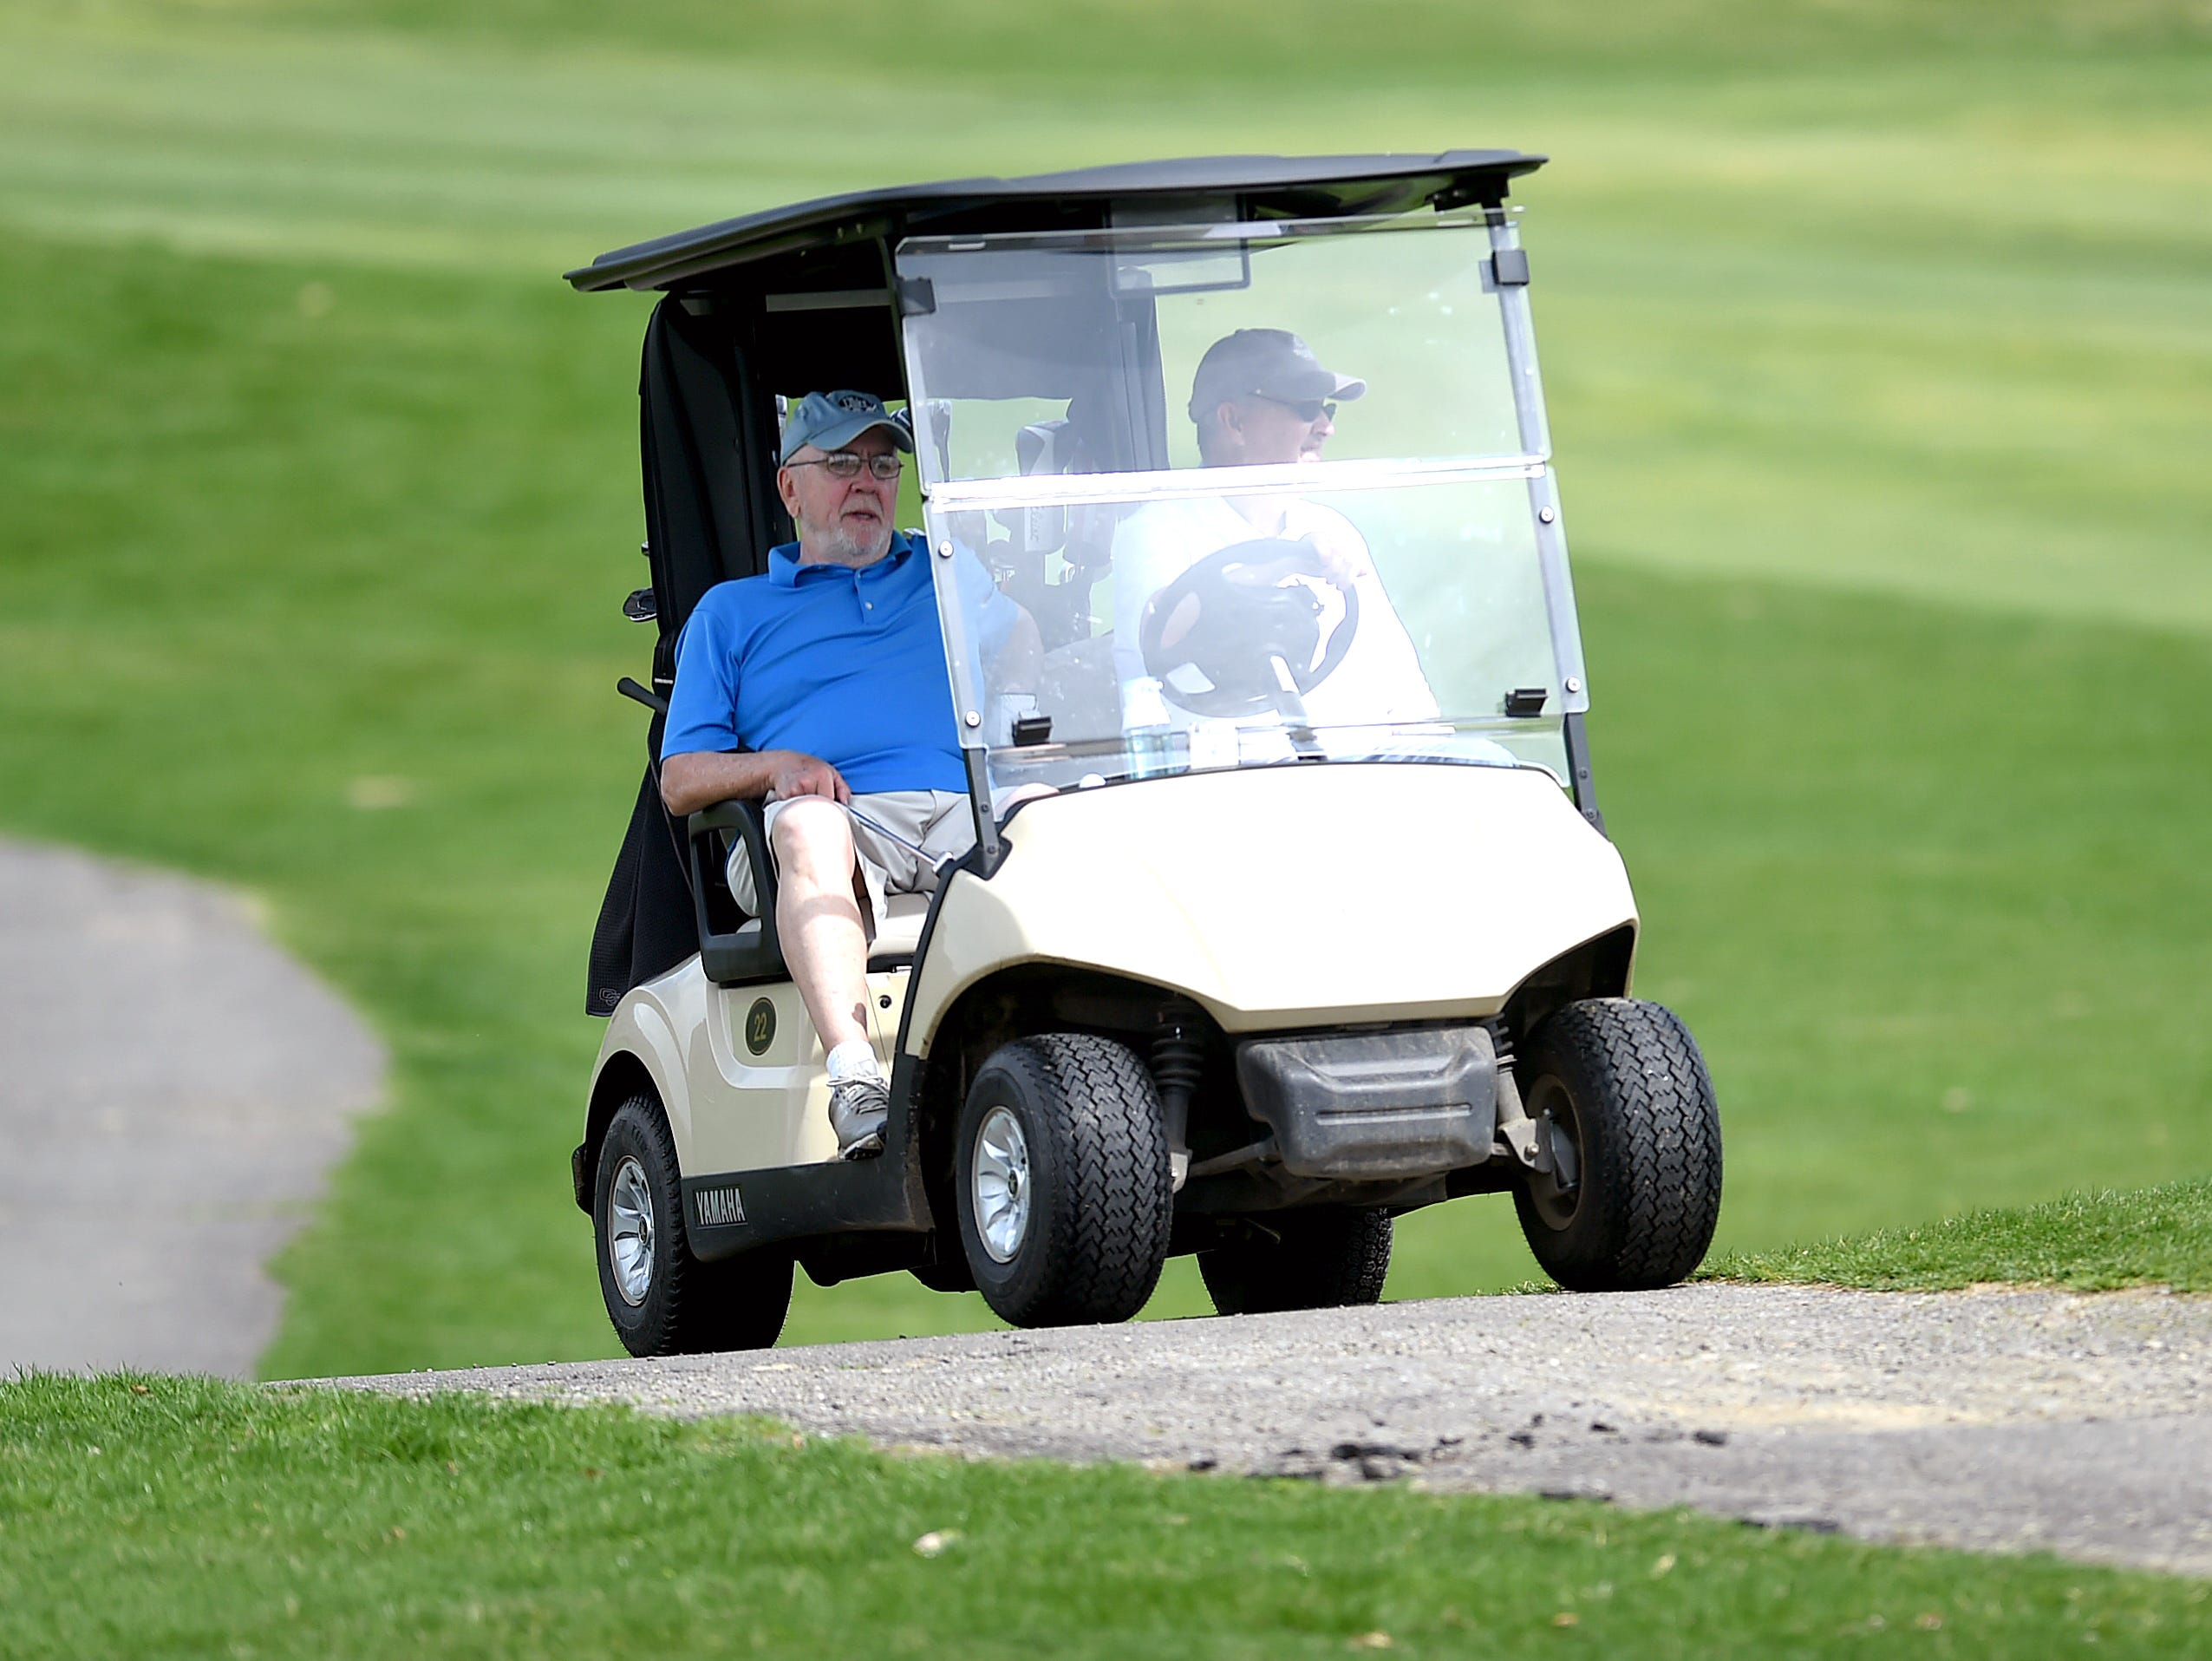 Ferdinand Haverly of Endicott rides in a golf cart at The Links at Hiawatha Landing in Apalachin on April 23, 2019.